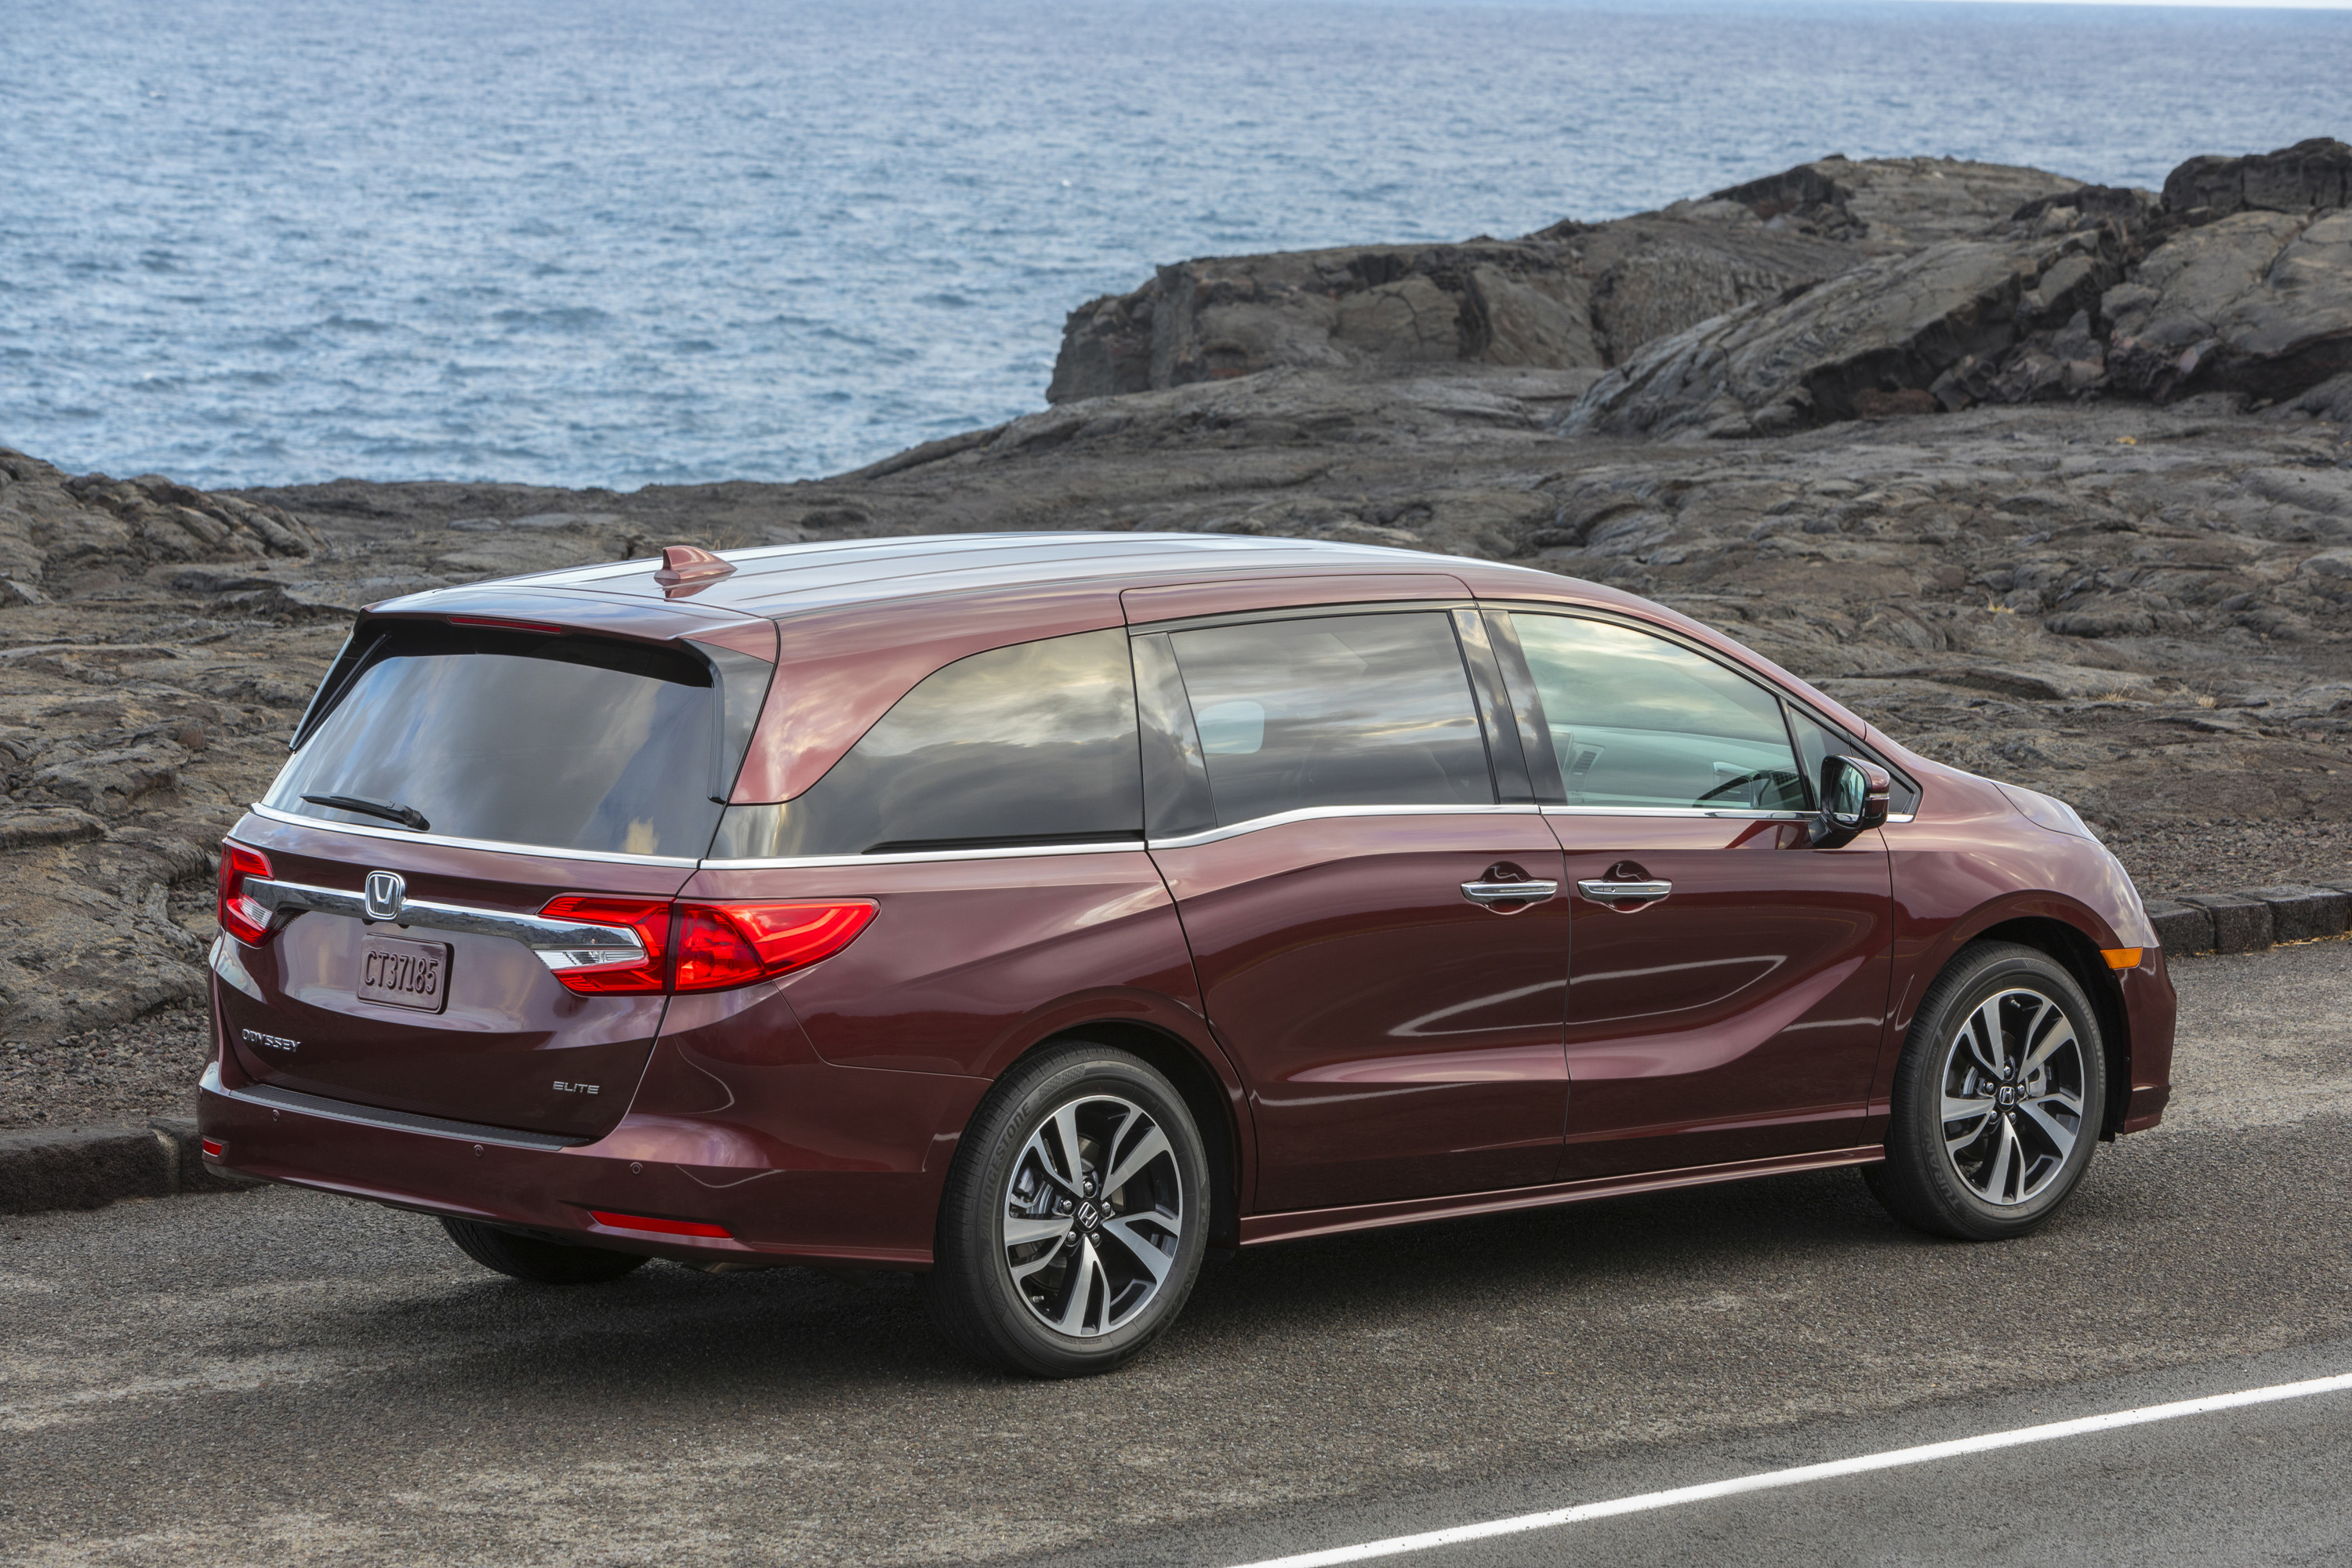 2019 Honda Odyssey Review And Release Date >> Honda Brings Nothing New To The Odyssey For 2019 Except Higher